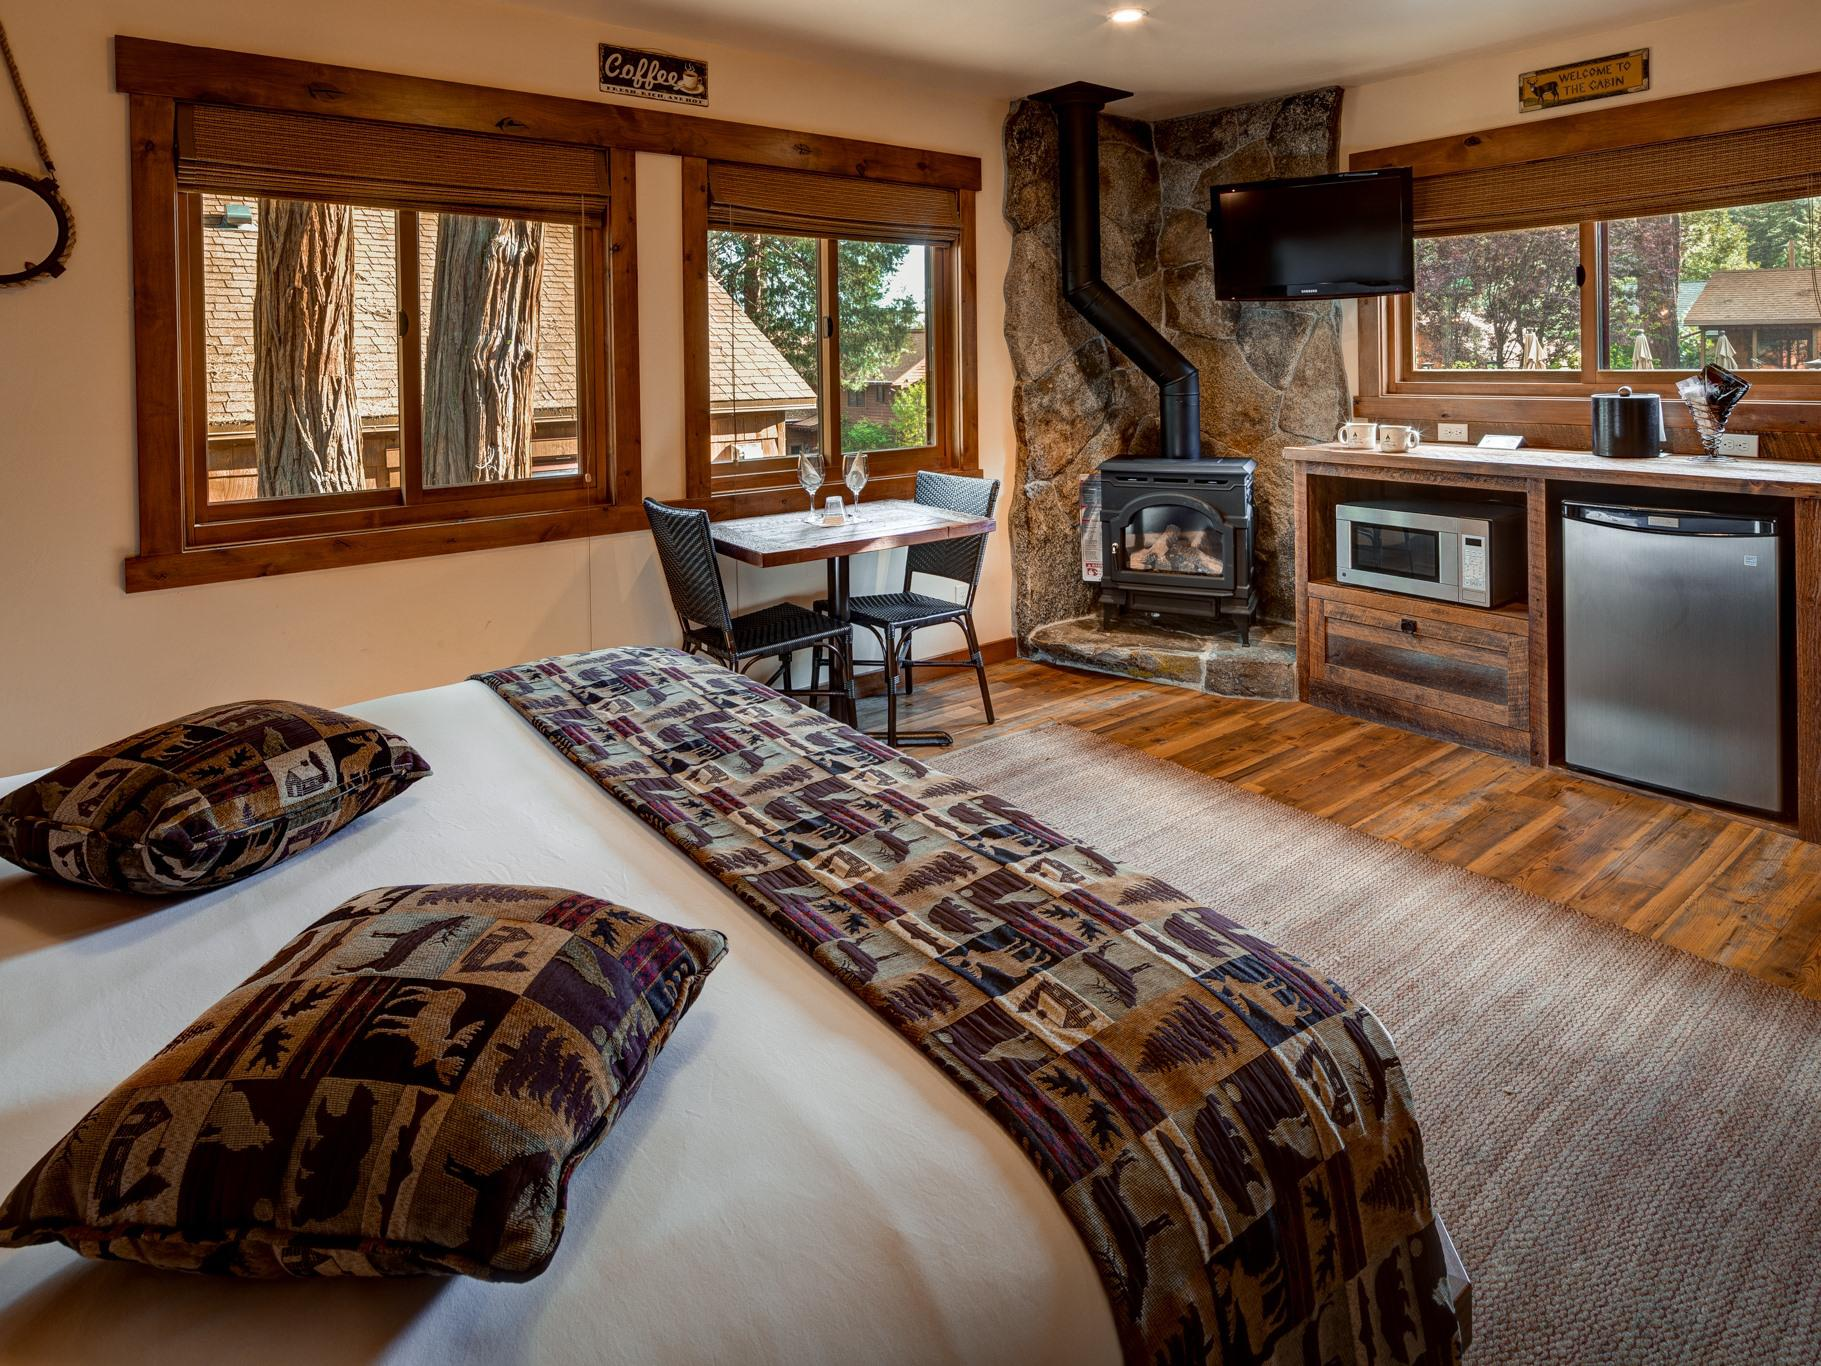 King Studio Cottage-Cabin-Ensuite with Jet bath-Luxury